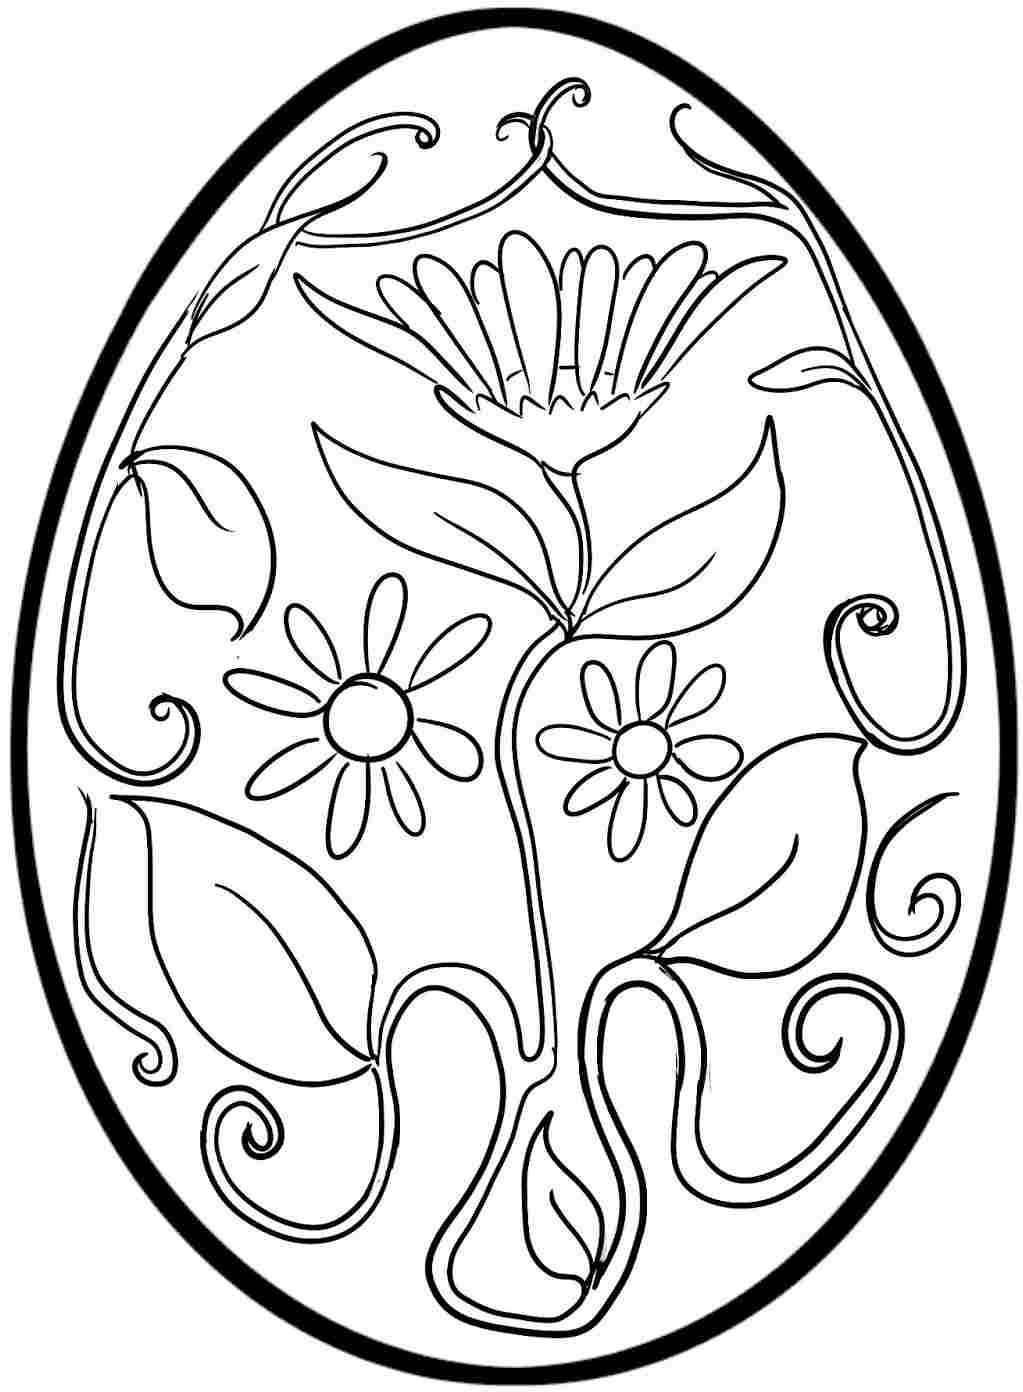 Easter Egg Colouring Pages Free For Kids & Boys Easter